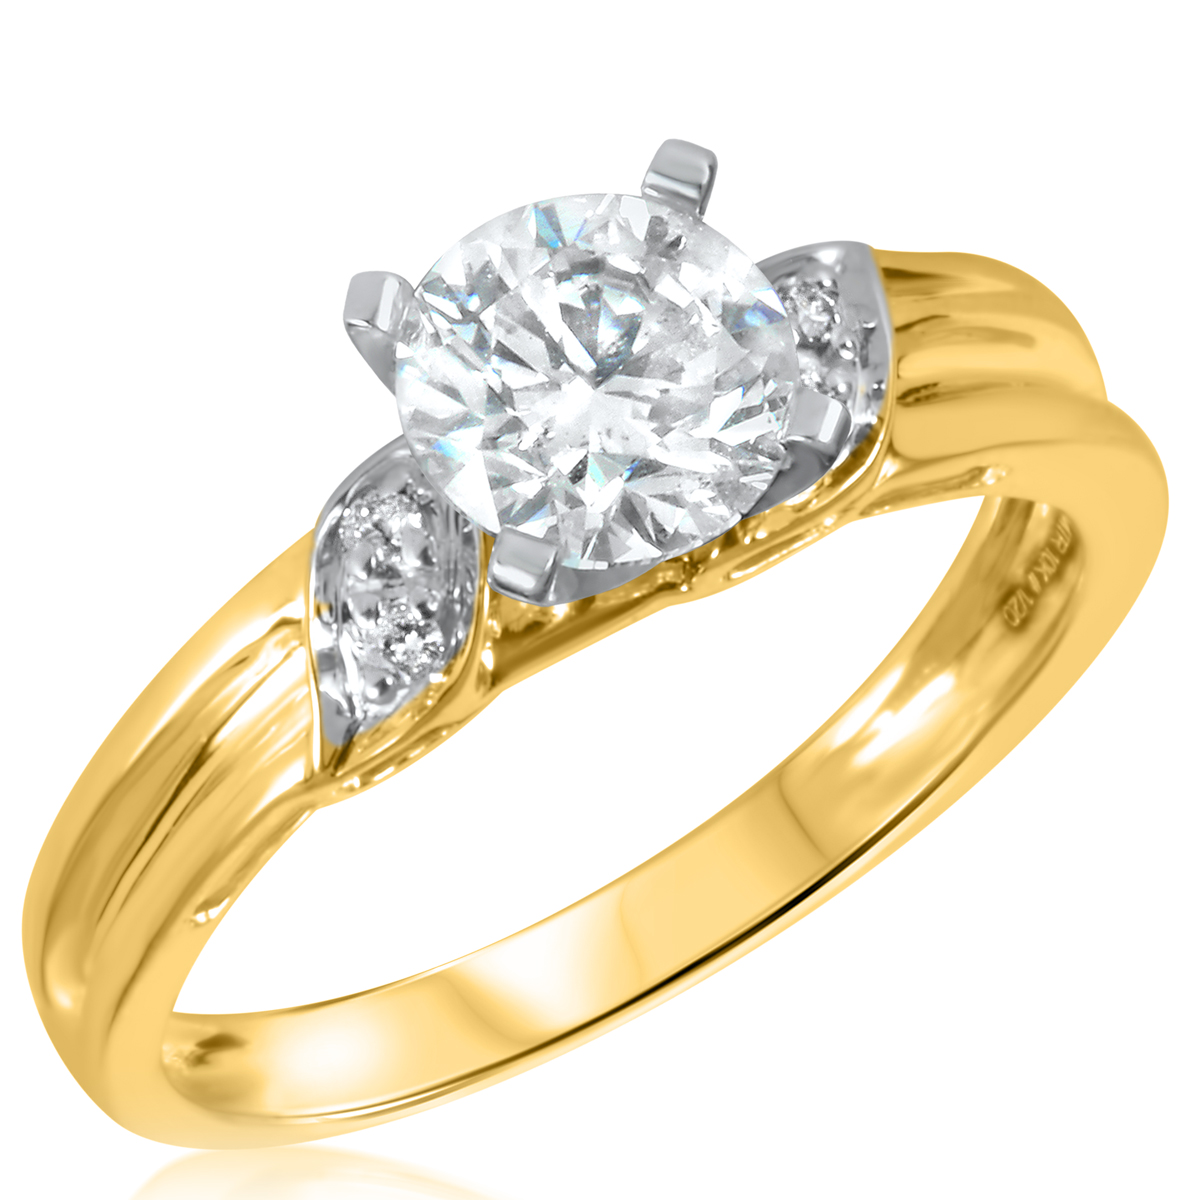 1 ct tw diamond ladies engagement ring 10k yellow gold for 1 ct wedding ring